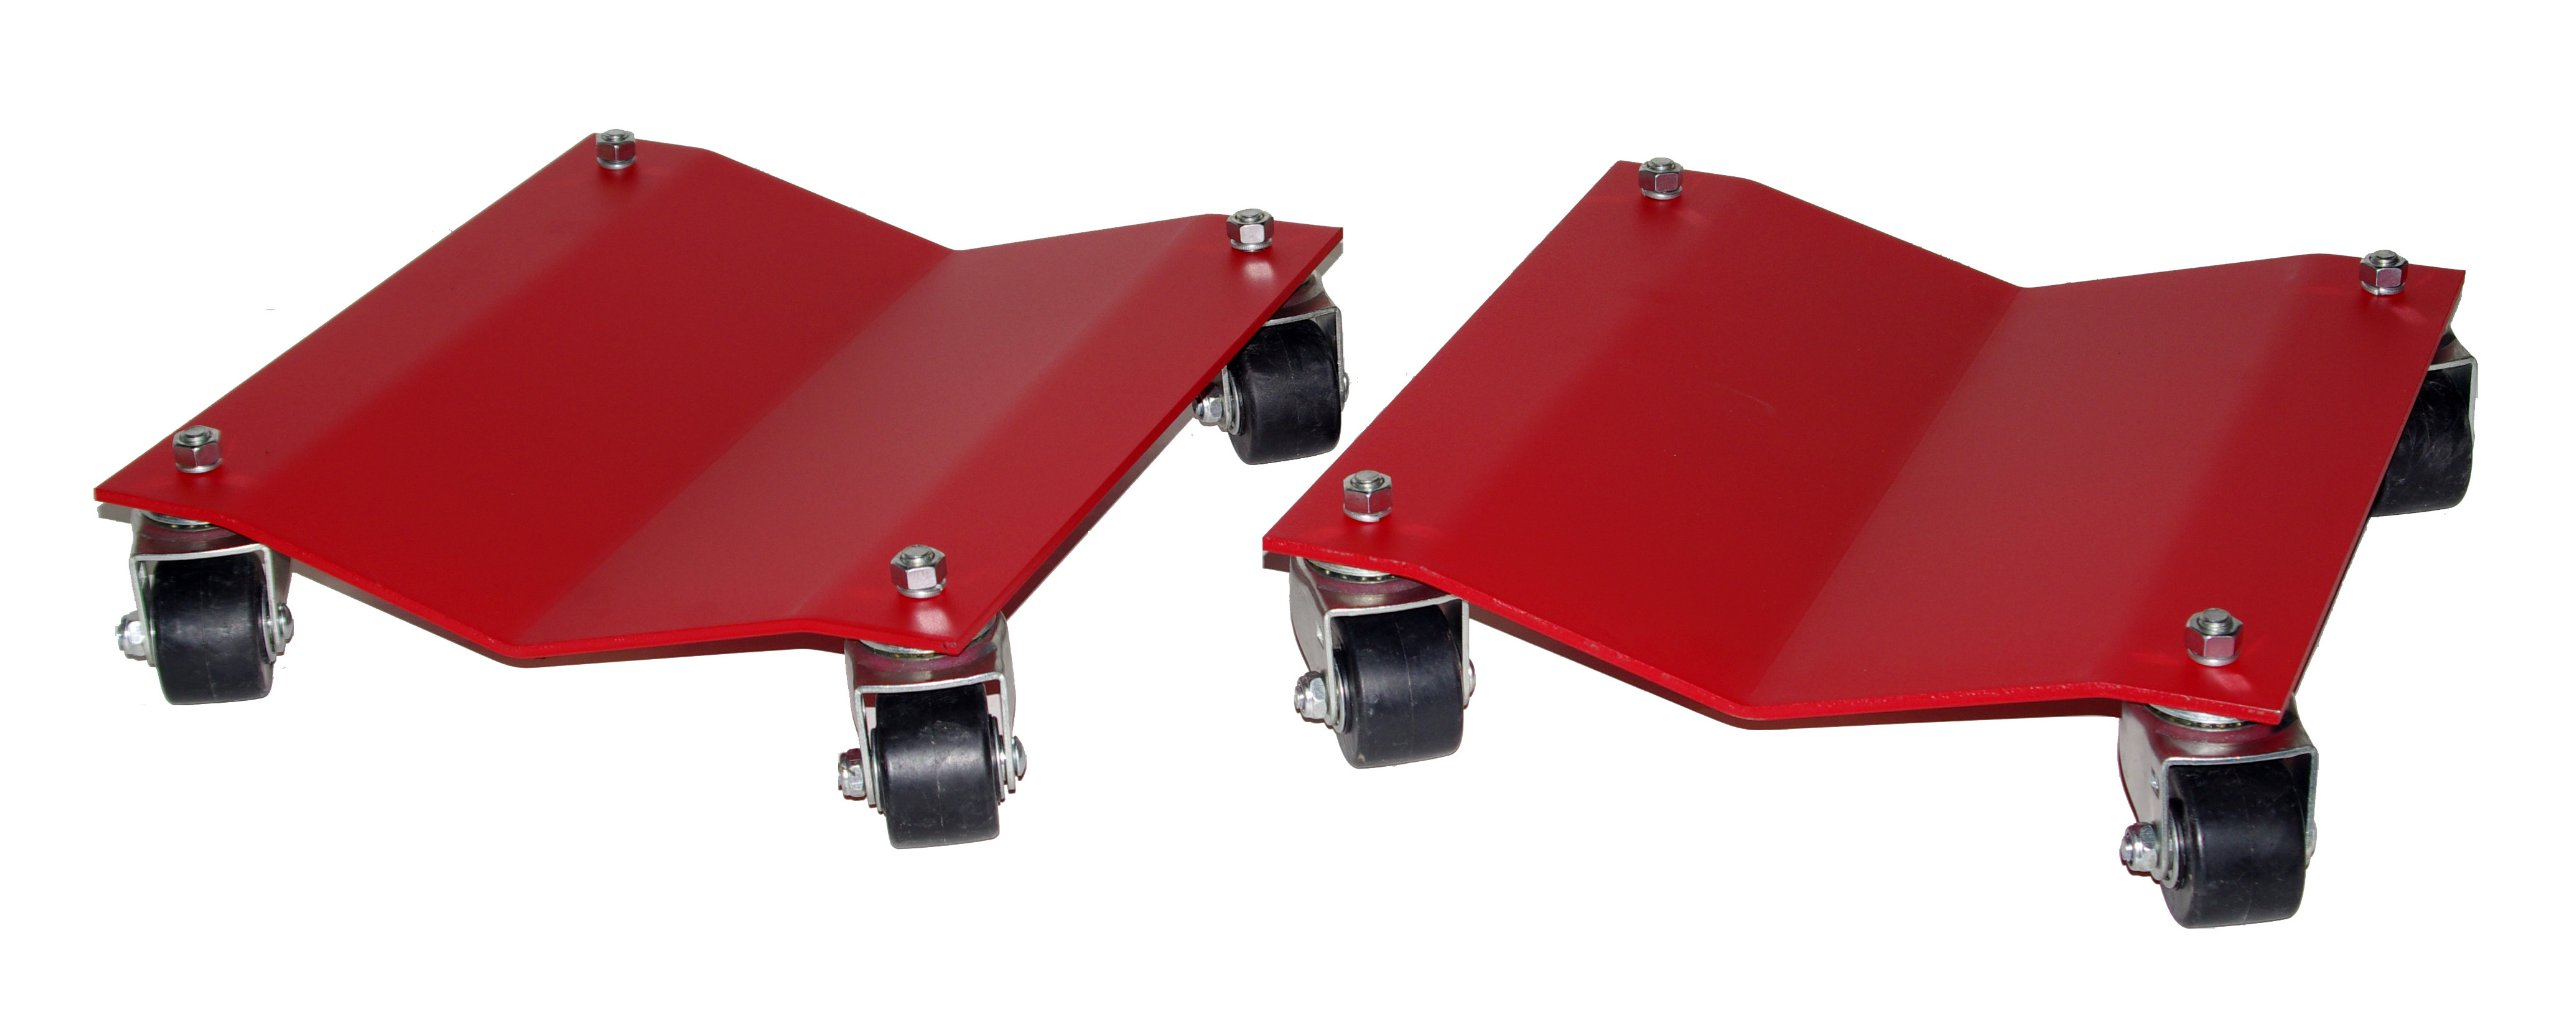 Merrick Machine (M998105) The Auto Dolly - Autodolly Heavy Duty - 16''x16'' Pair